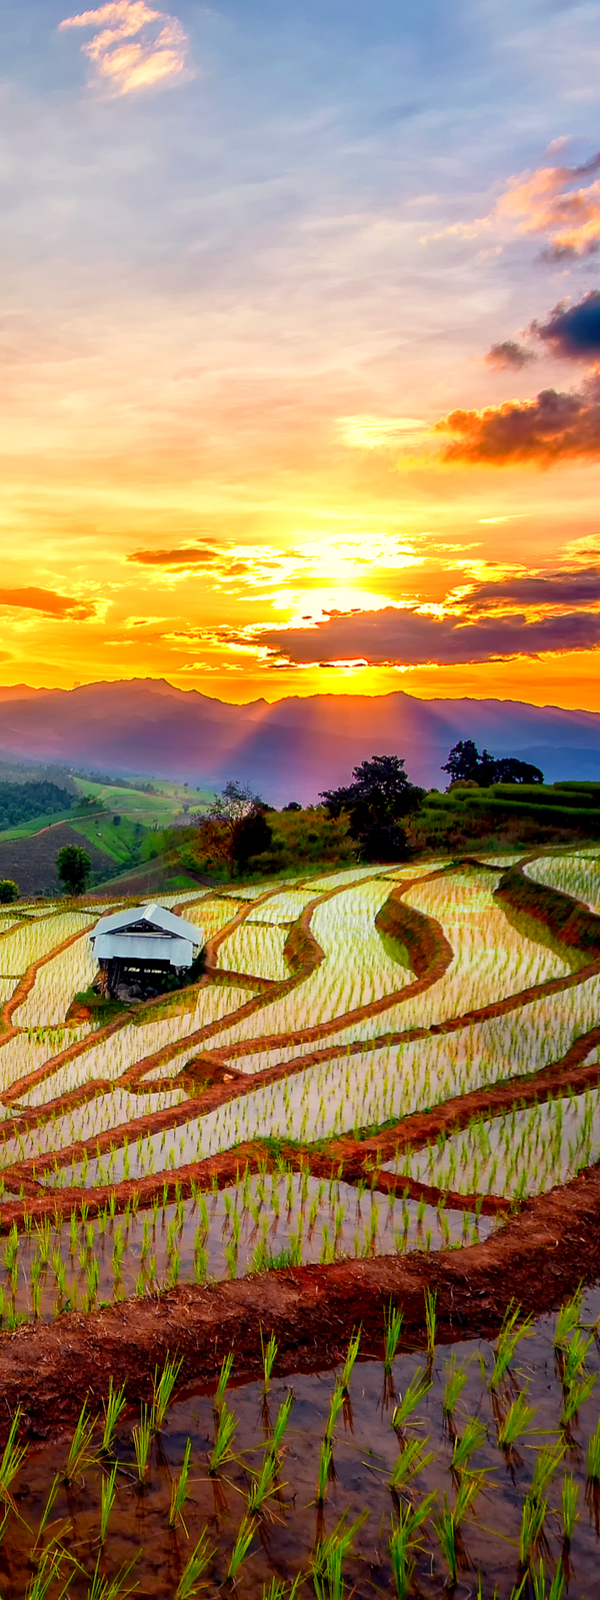 Terraced Paddy Field in Mae-Jam Village, Chaing Mai Province, Thailand